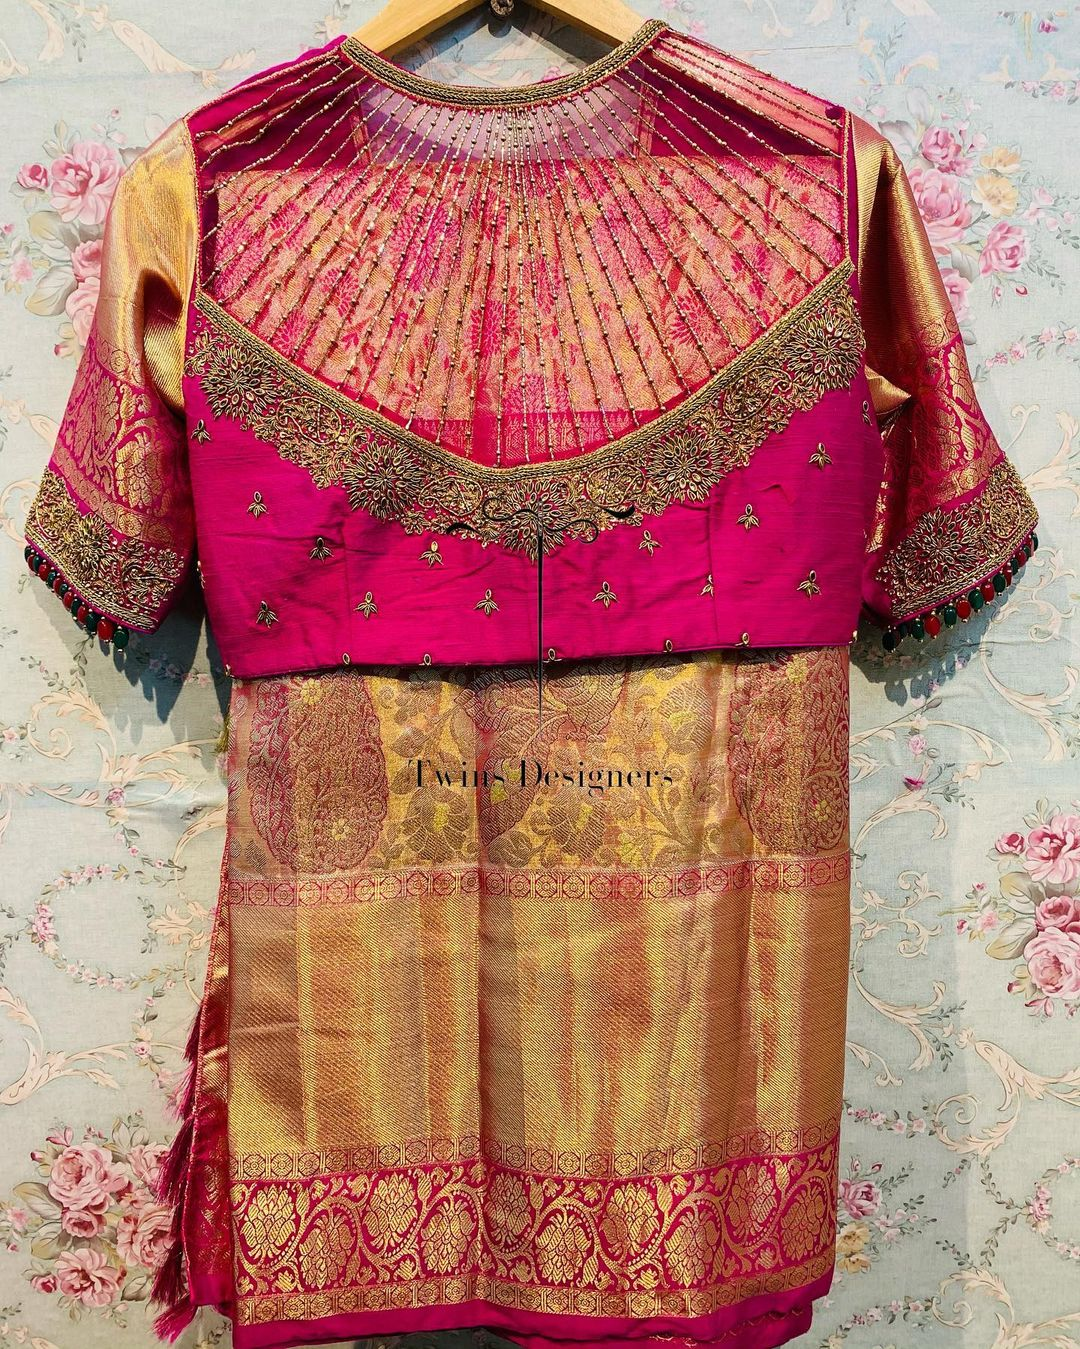 Customised maggam work bridal blouse back with bead strings and gold zari sleeves. 2021-07-01